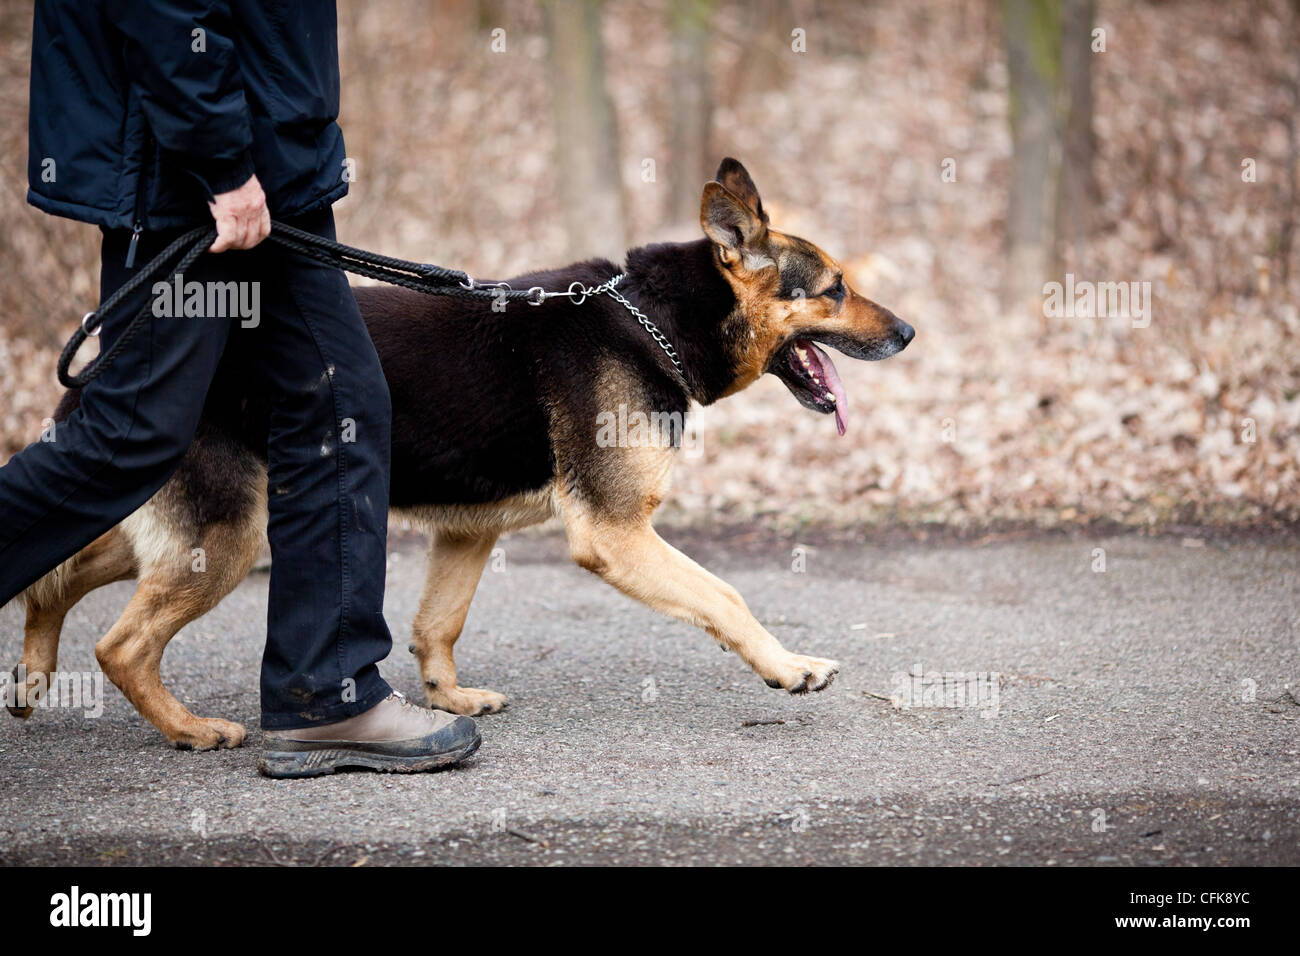 Master and his obedient (German Shepherd) dog - Stock Image